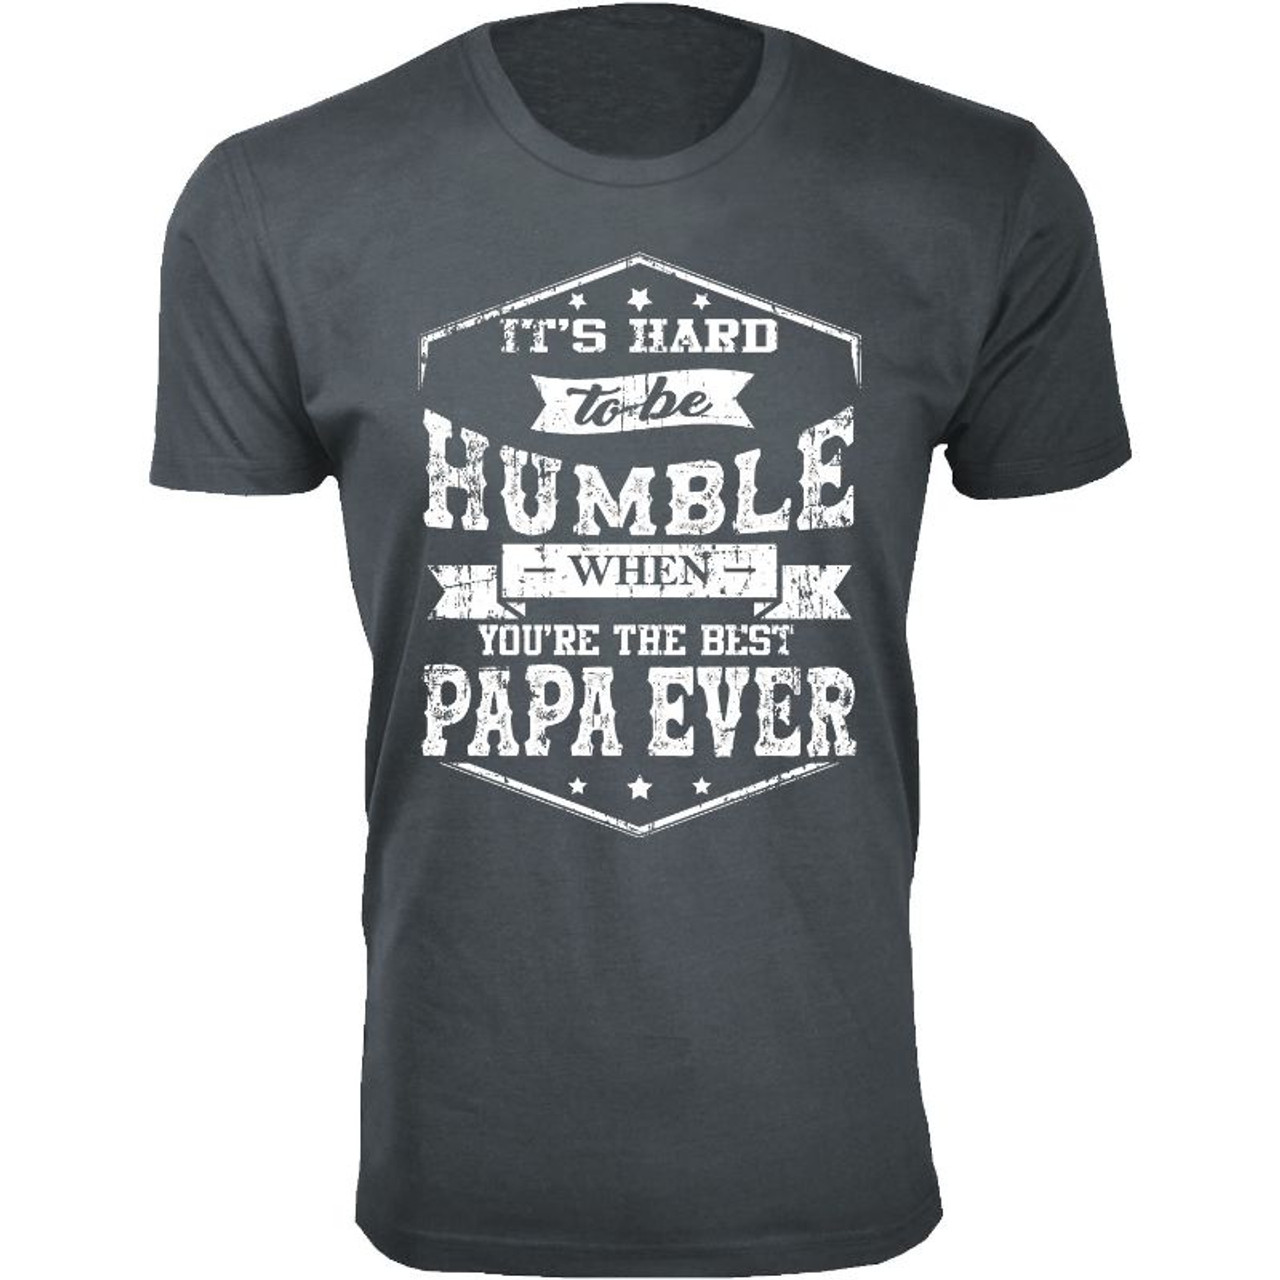 Men's Father's Day Funny T-Shirts for Dad and Grandpa